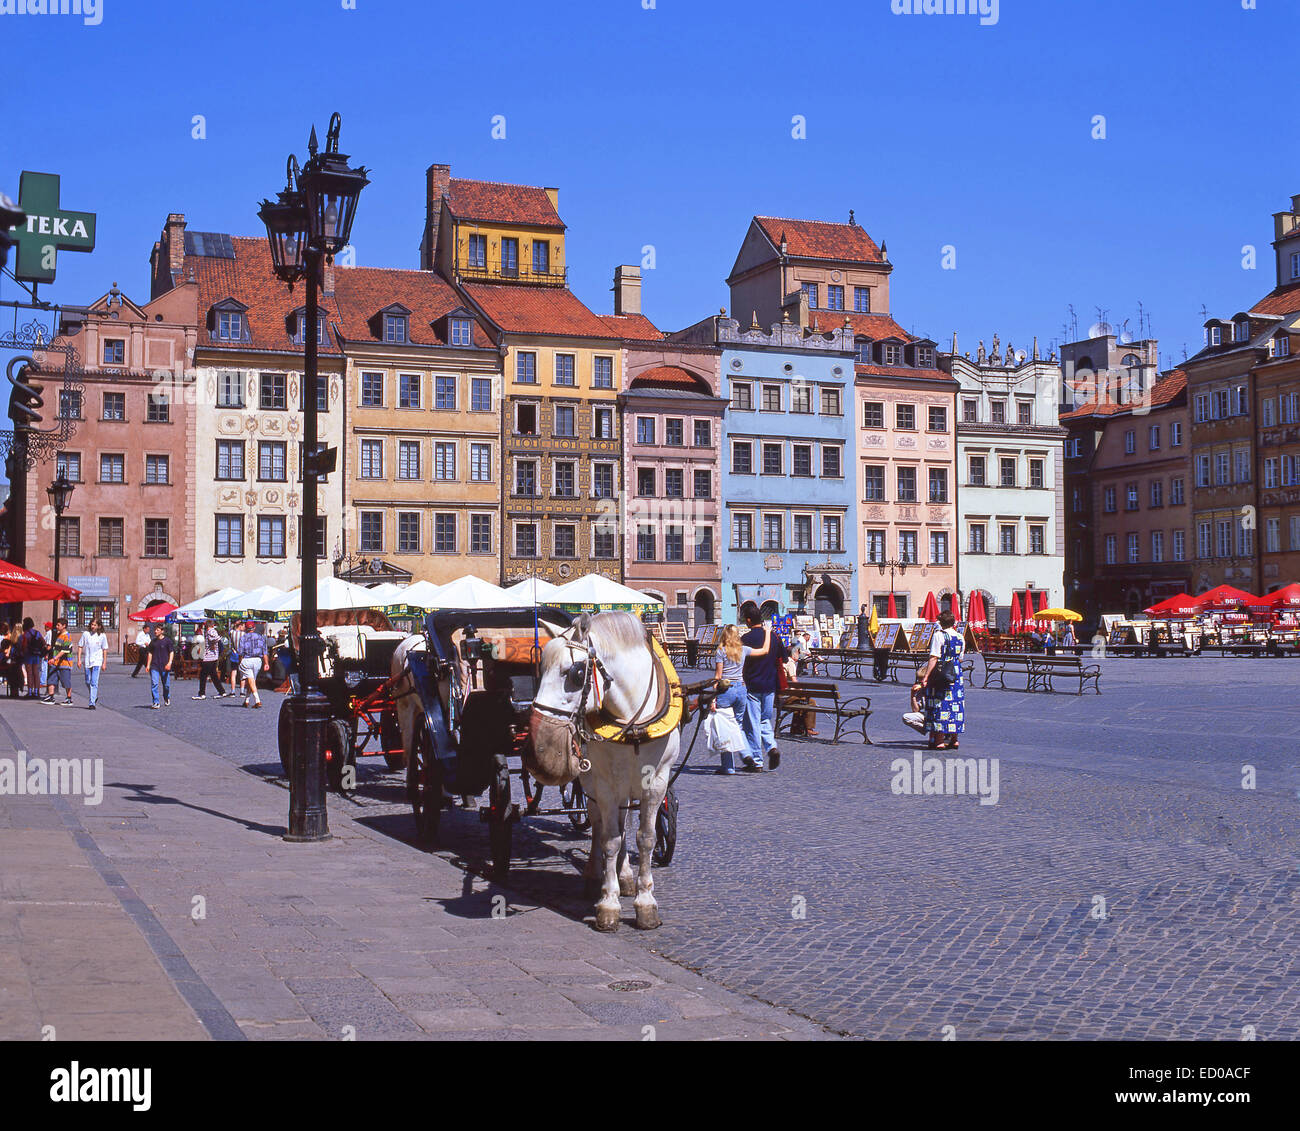 Old Town Market Place, Old Town, Warsaw (Warszawa), Masovia Province, Republic of Poland - Stock Image